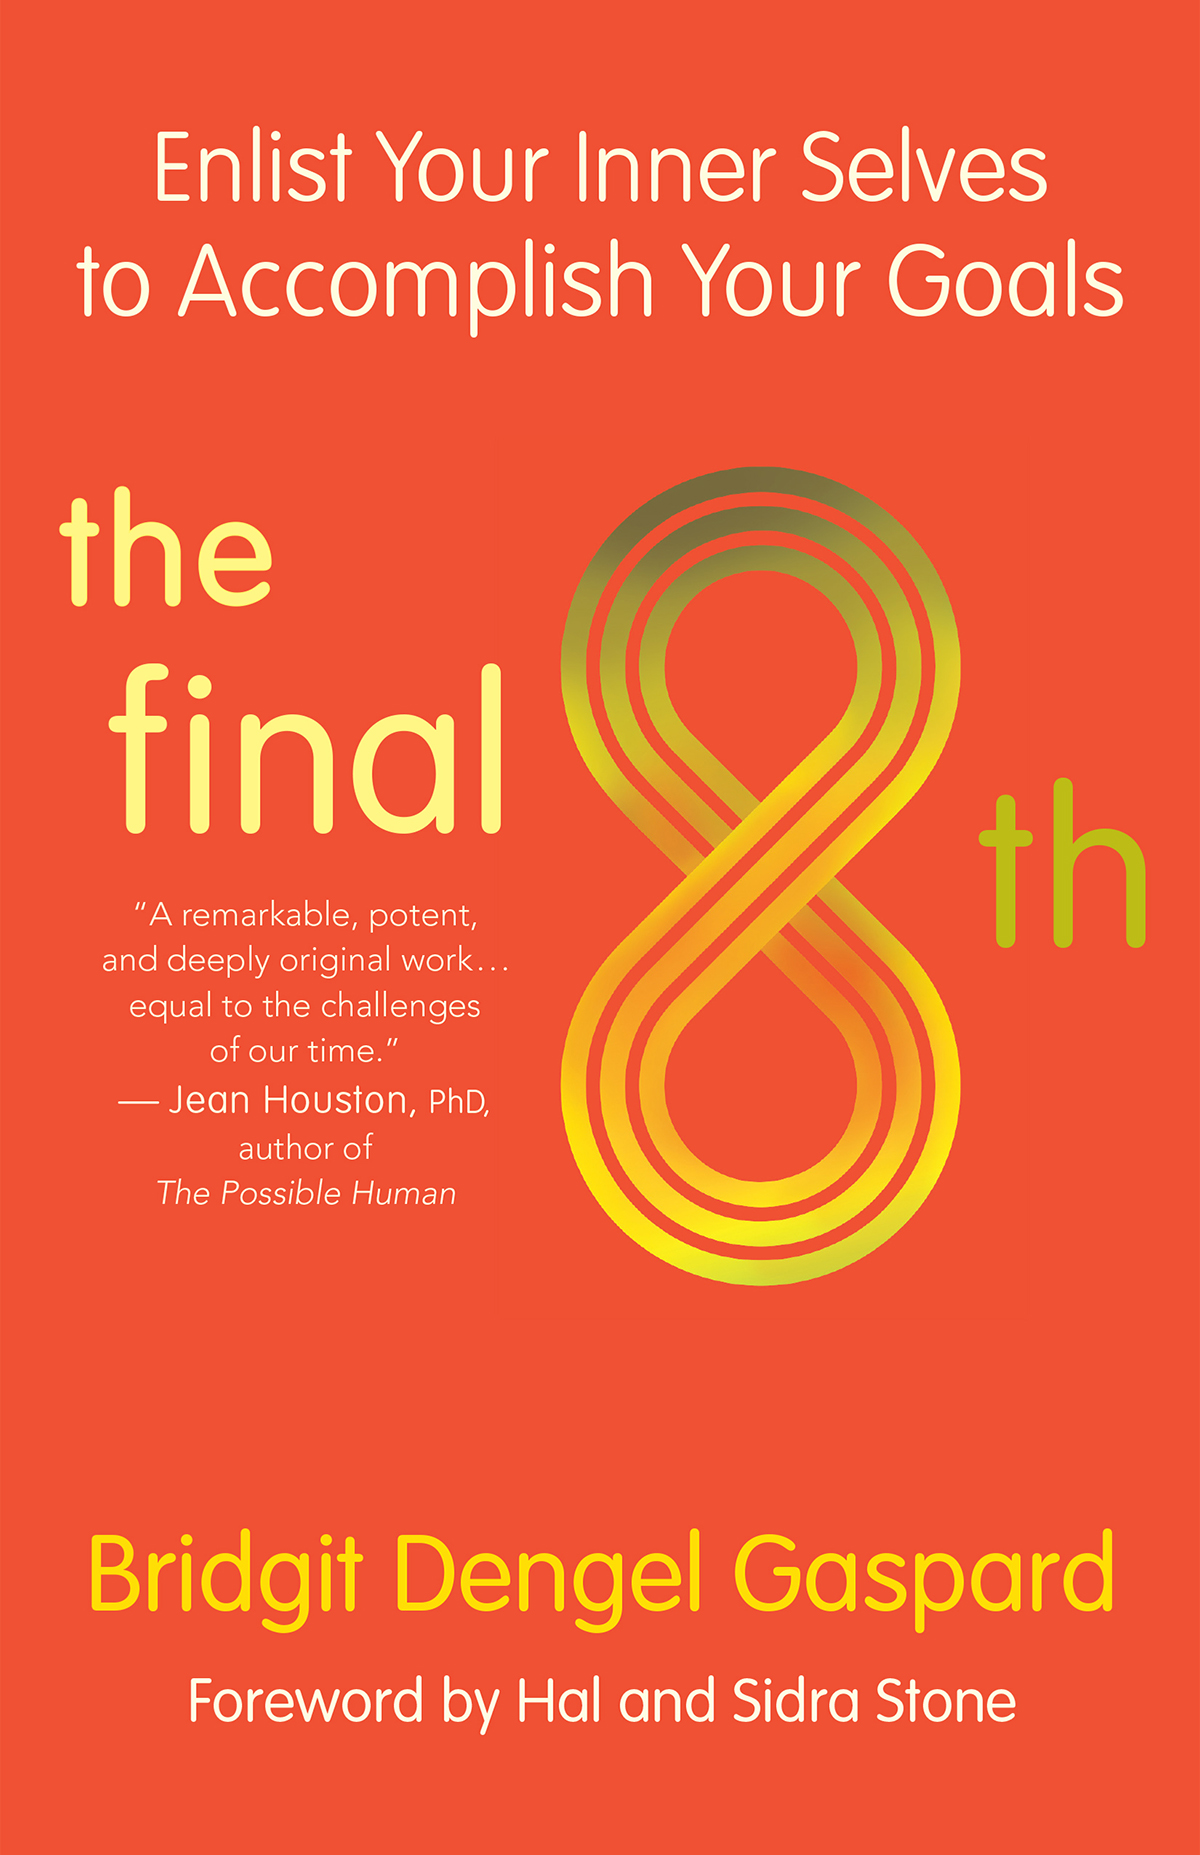 Virtual Book Launch: The Final 8th by Bridgit Dengel Gaspard in conversation with J. Tamar Stone